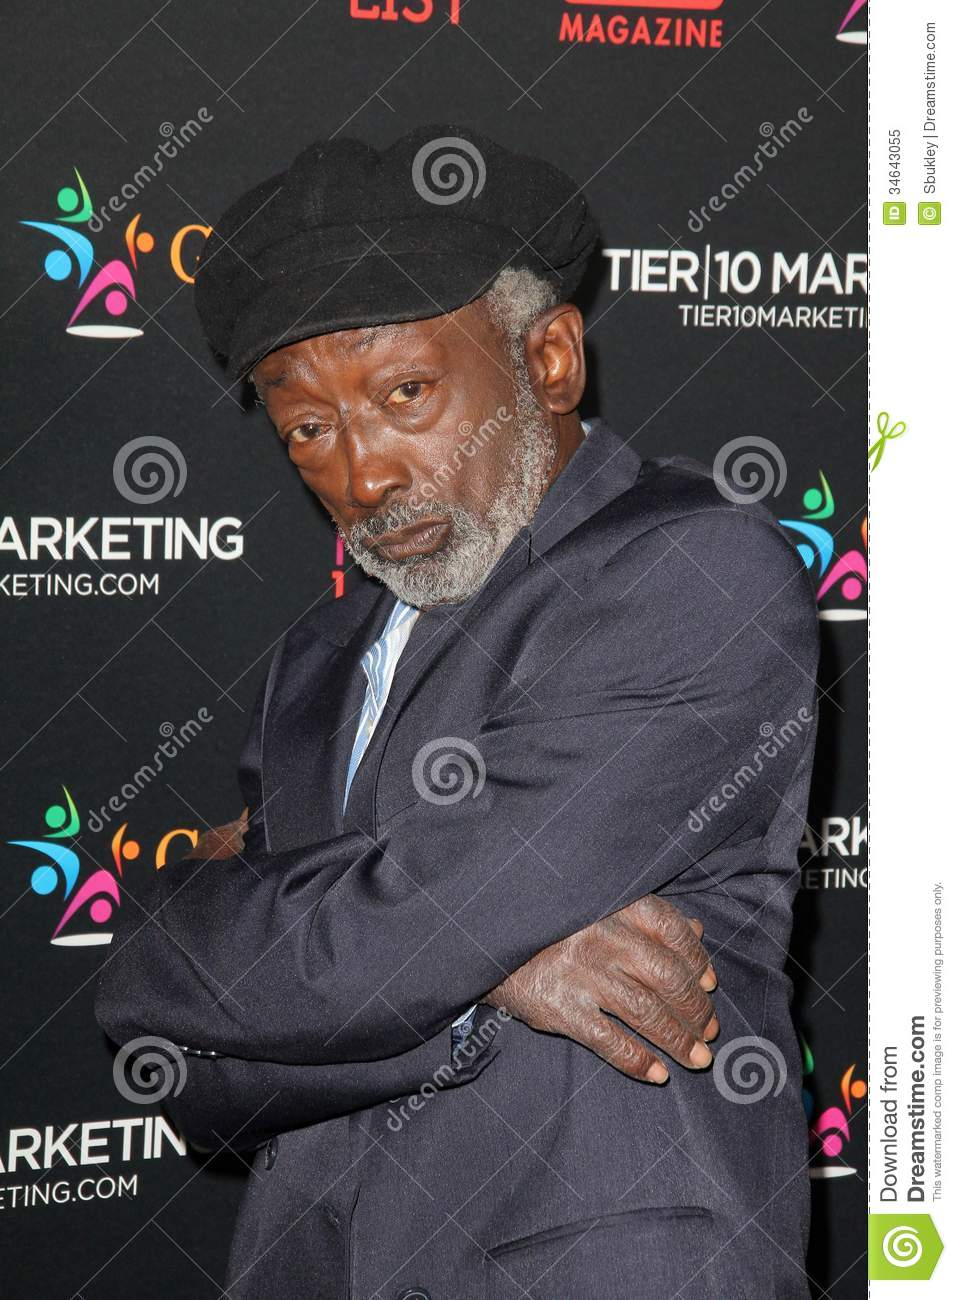 garrett morris imdbgarrett morris music, garrett morris instagram, garrett morris, garrett morris ant man, garrett morris family guy, гаррет моррис, garrett morris height, garrett morris net worth, garrett morris snl, garrett morris baseball, garrett morris hearing impaired, garrett morris shot, garrett morris ant man snl, garrett morris imdb, garrett morris snl baseball, garrett morris winter wonderland snl, garrett morris wife, garrett morris comedy club, garrett morris singing